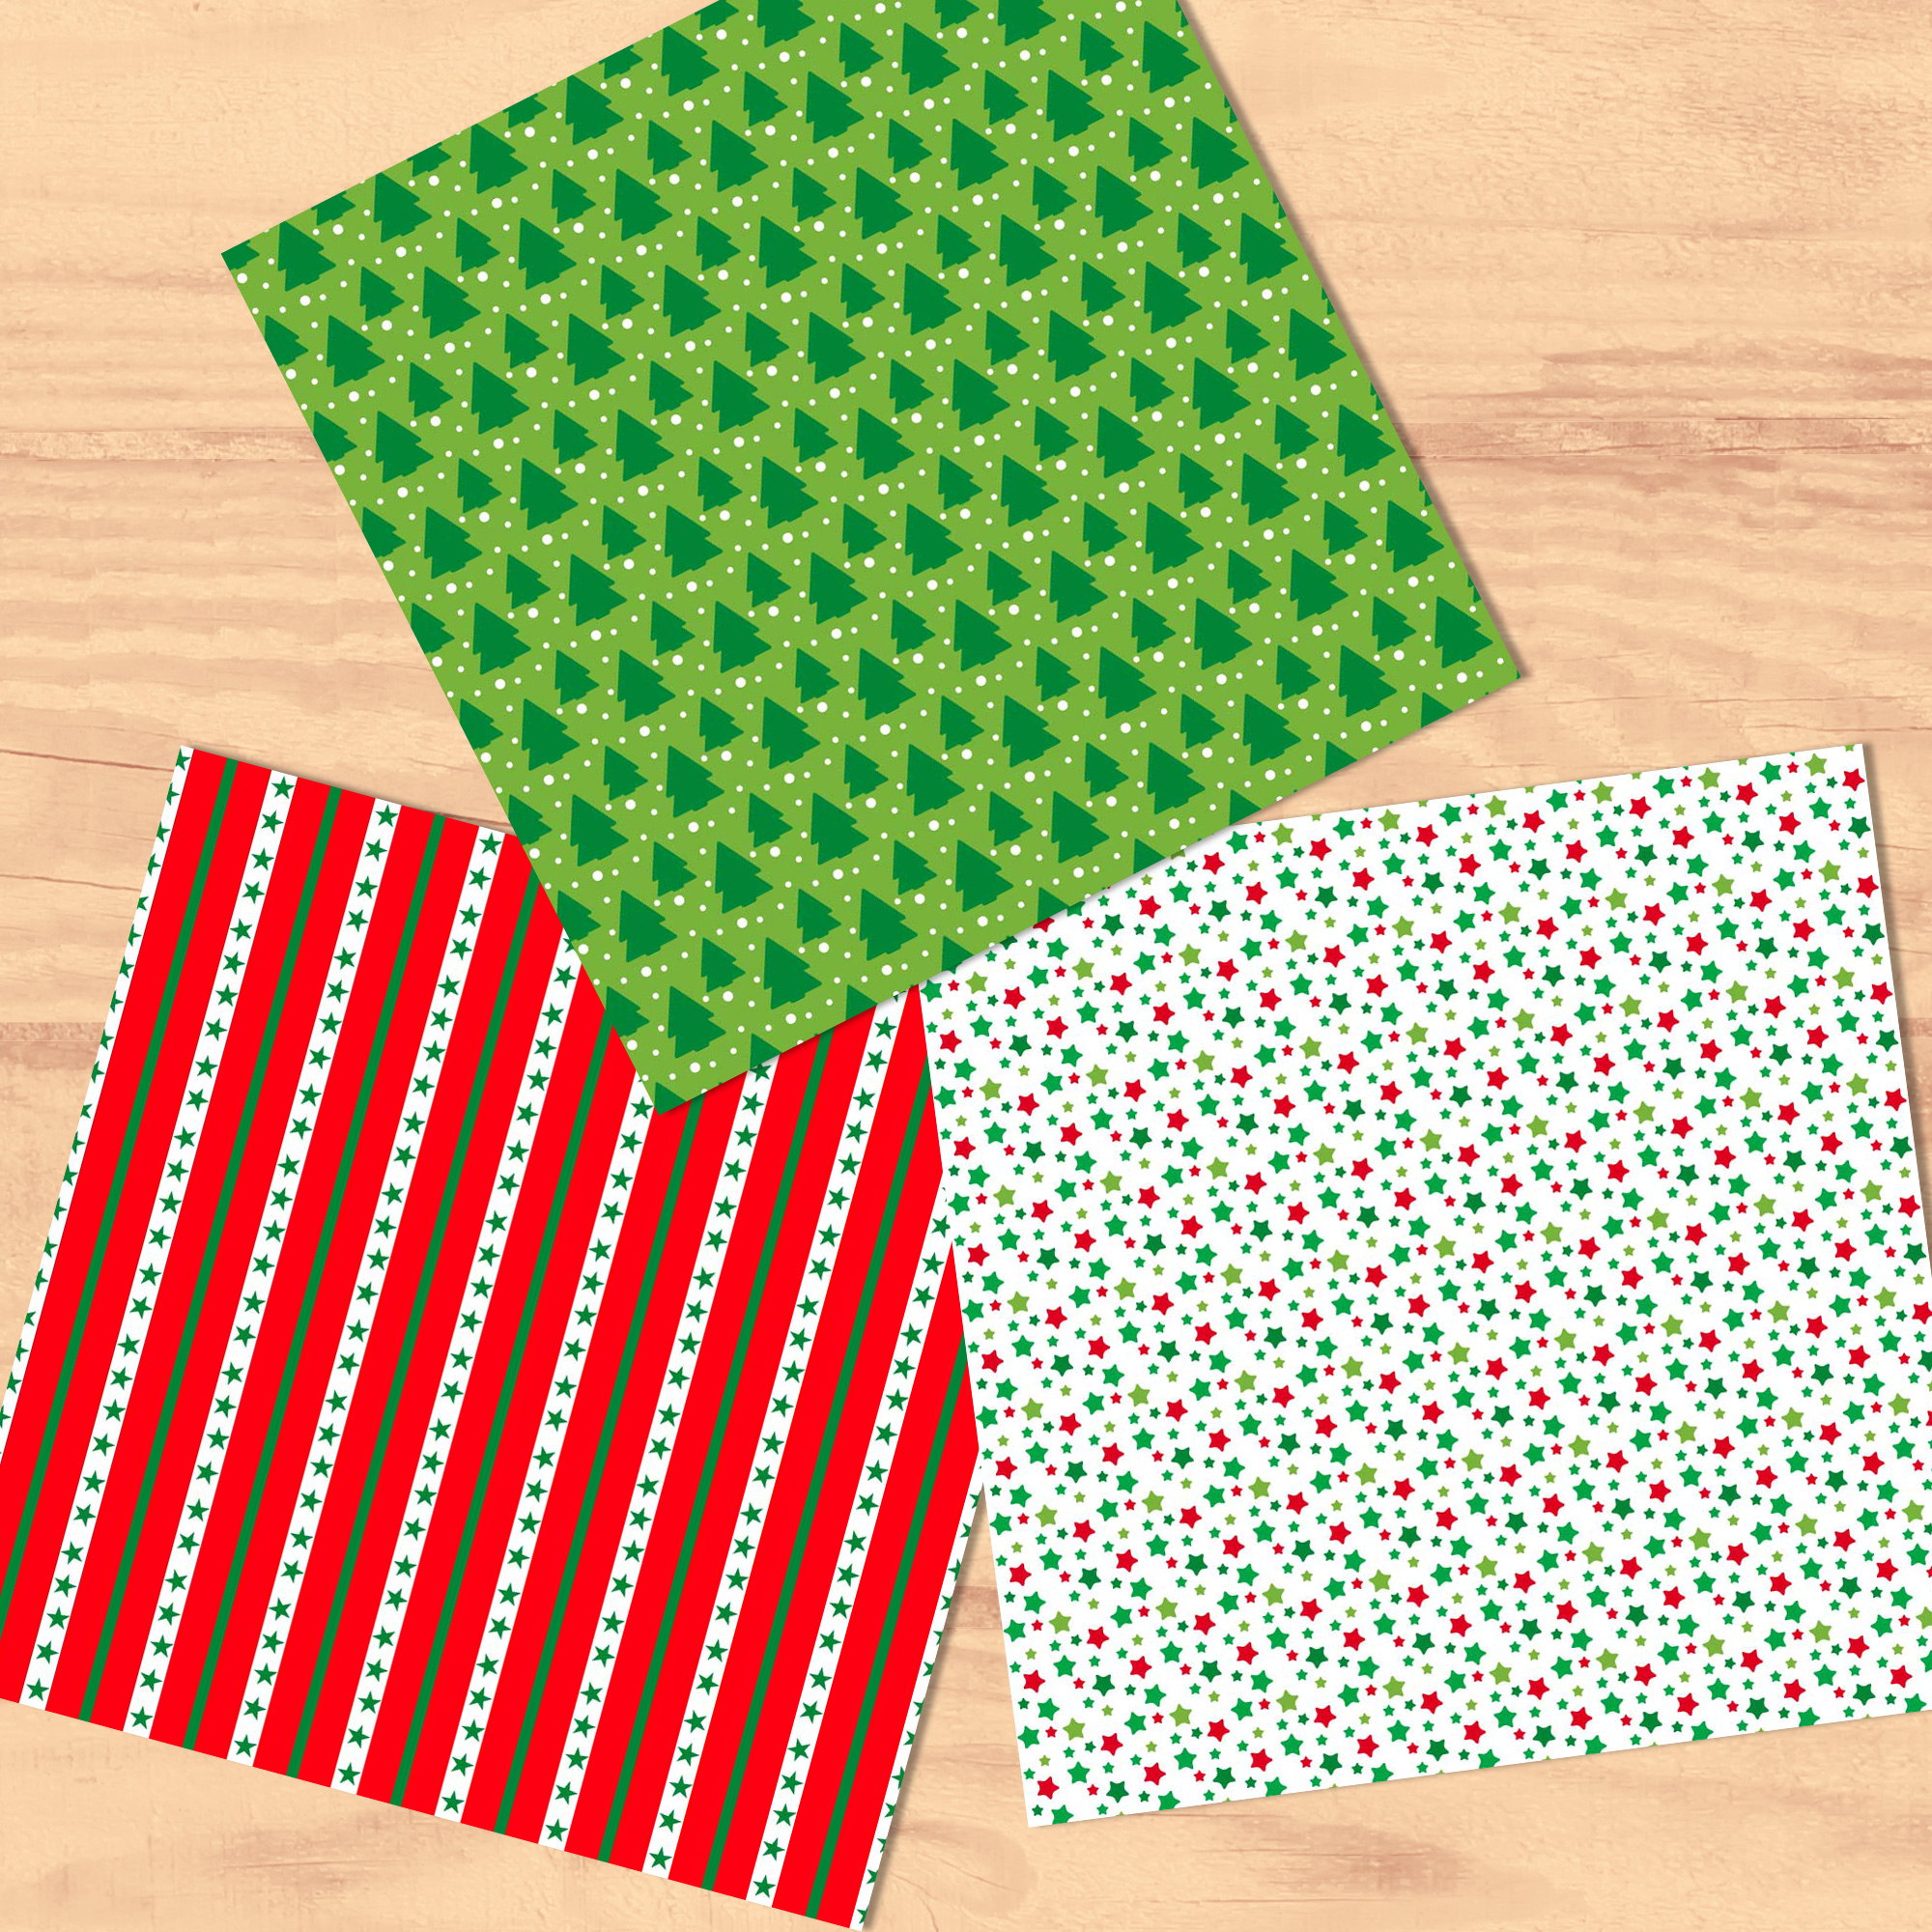 Bright Christmas 12 Tileable Digital Papers example image 3